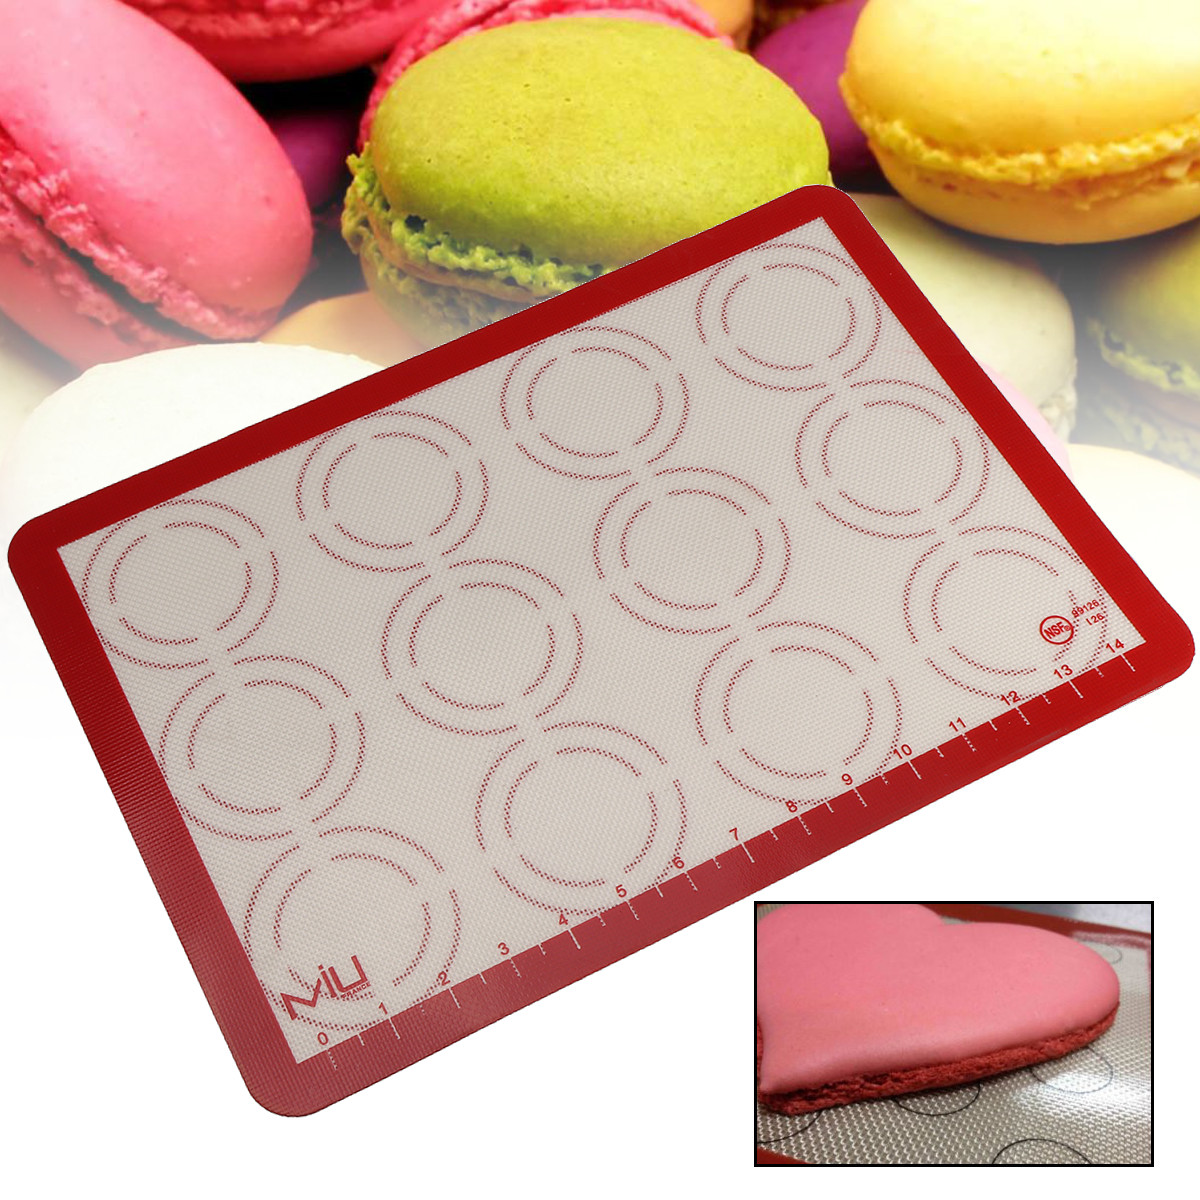 Baking Mat,Meigar Nonstick Silicone Mat Baking Oven Pastry Liner Macaron Cake Sheet Kitchen Reusable Baking Sheet for Your Jelly Roll Pan